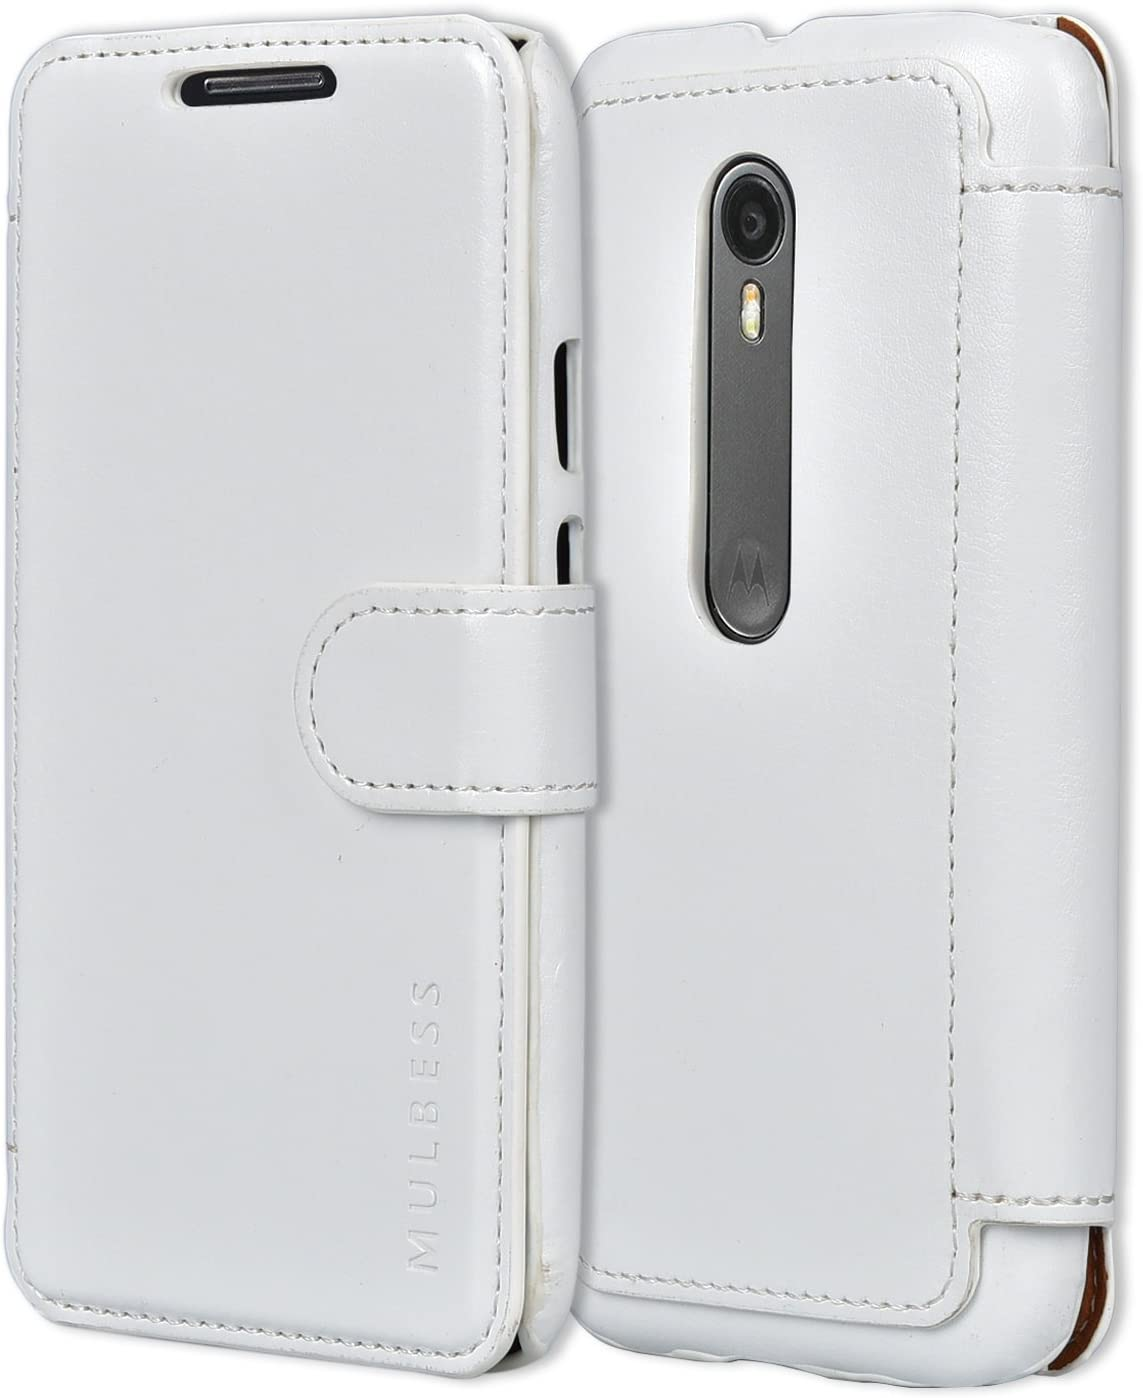 Mulbess Layered Motorola Moto G 3rd Leather Case,Flip Phone Case Wallet with Magnetic Clasp for Motorola Moto G 3 Gen Cover, White